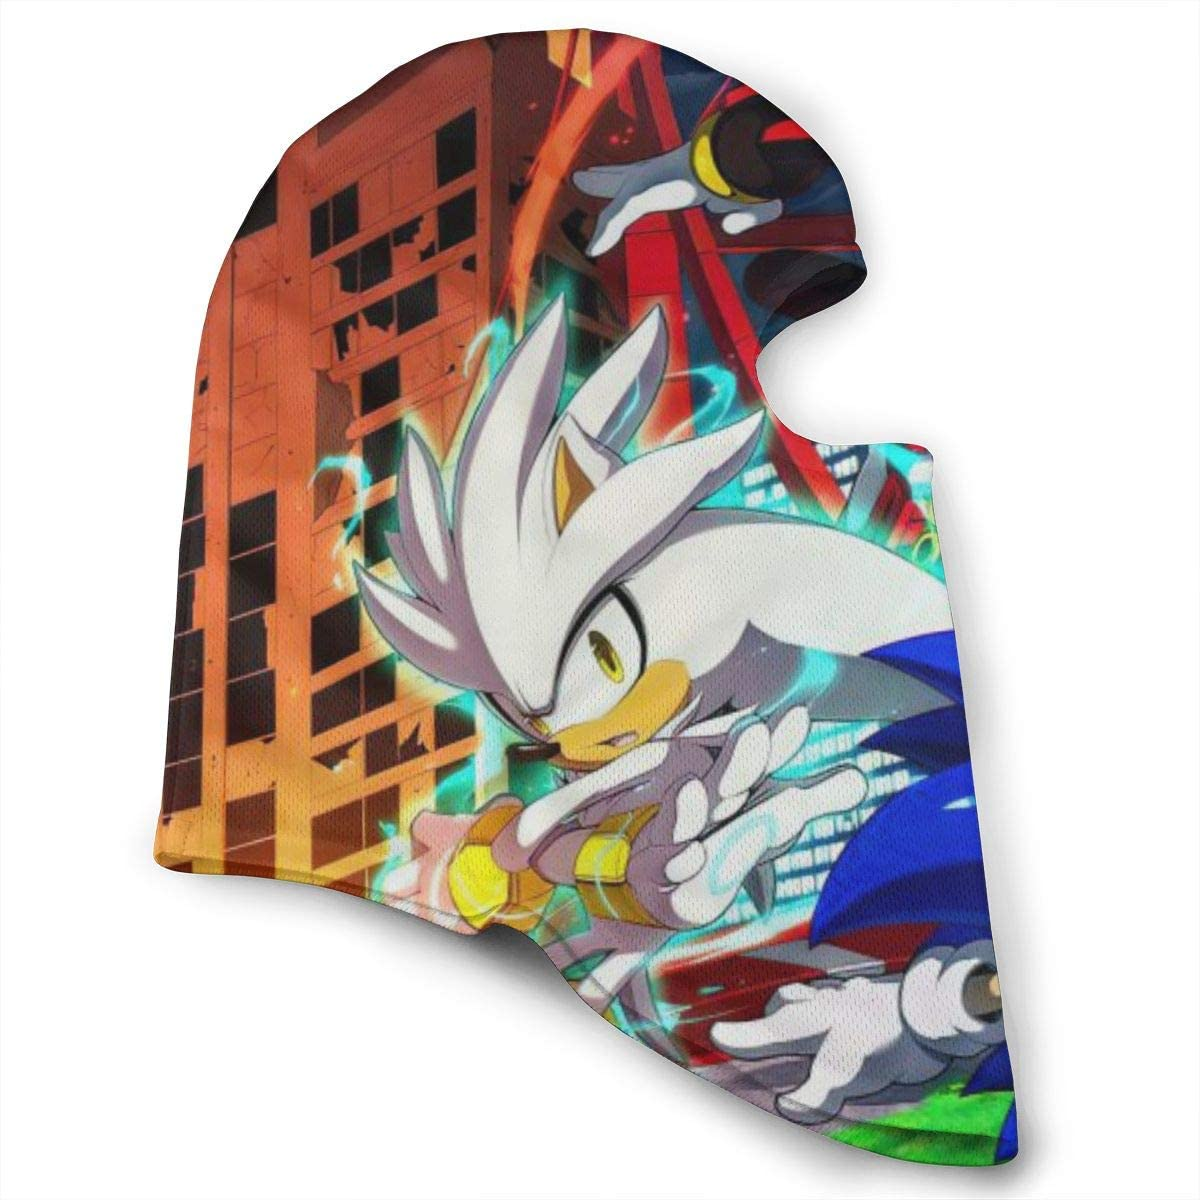 Sonic Hoods Cool, Ventilating, Windproof, Sunscreen, Anti Foam, Outdoor Mask for Riding